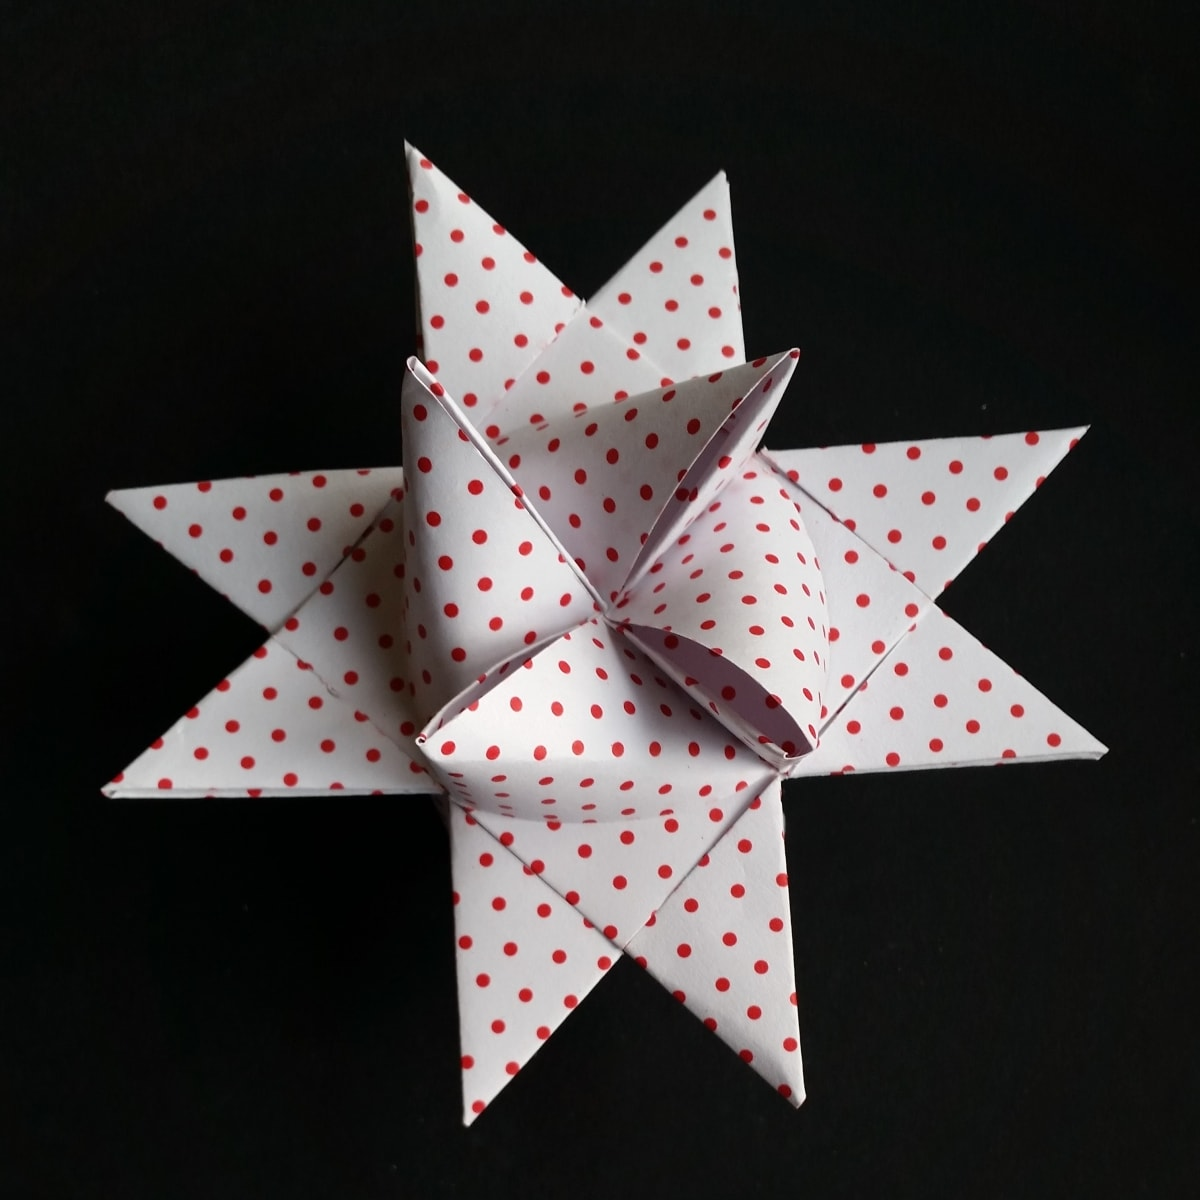 How to make a Froebel star - a classic Danish Christmas decoration. If you are a beginner, check out Danish Things @ danishthings.com. You'll find Froebel star instructions, a step by step guide with text, photos and video. Sådan fletter du en julestjerne - trin for trin. Er du nybegynder, så se med. Om du folder eller fletter julestjerner - får du hjælp til alle trin. Gennemgang med tekst, fotos og video. Find opskrifter, trin for trin guides, gratis print selv og inspiration til årets gang på danishthings.com